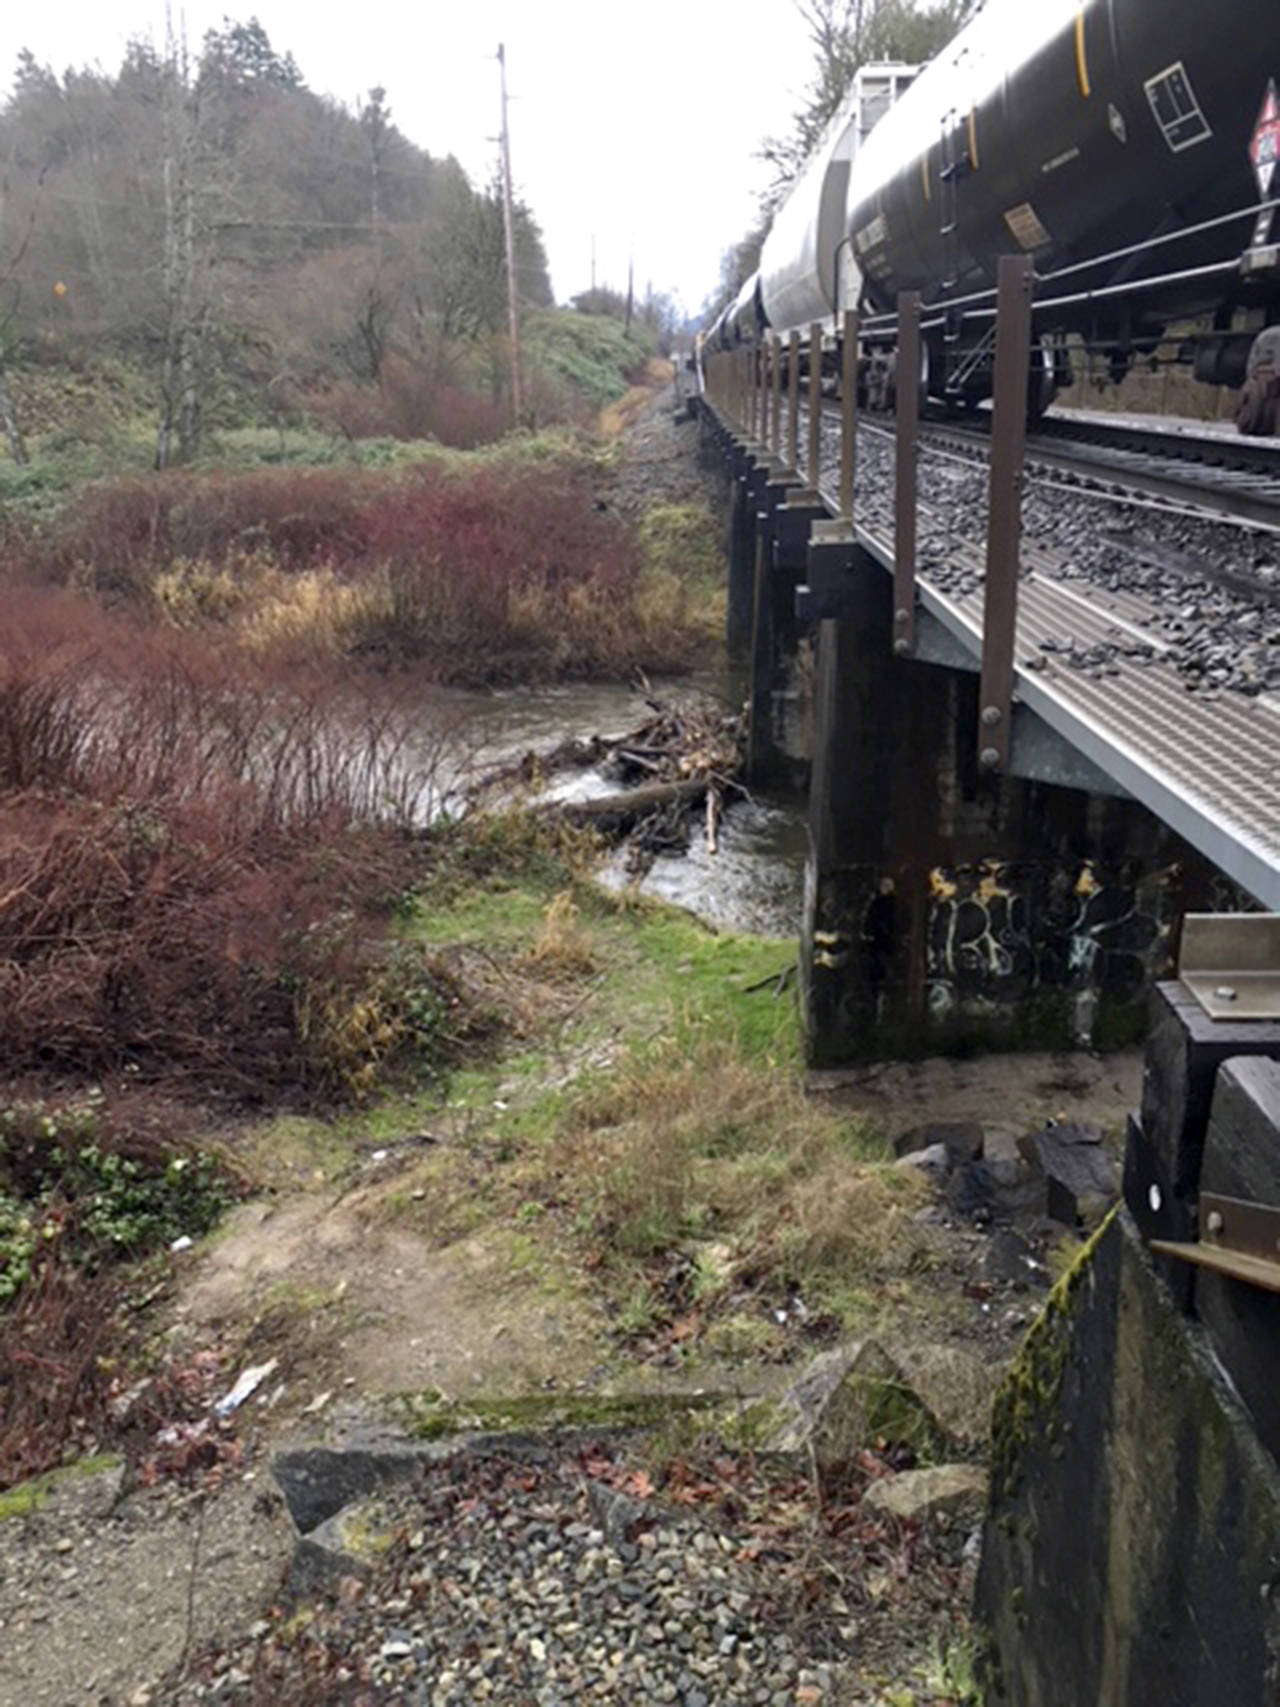 A dive team was called Tuesday morning to recover a body after a train vs. pedestrian accident in Monroe. The accident occurred shortly after 6 a.m. (Photo courtesy of Monroe Police Department)